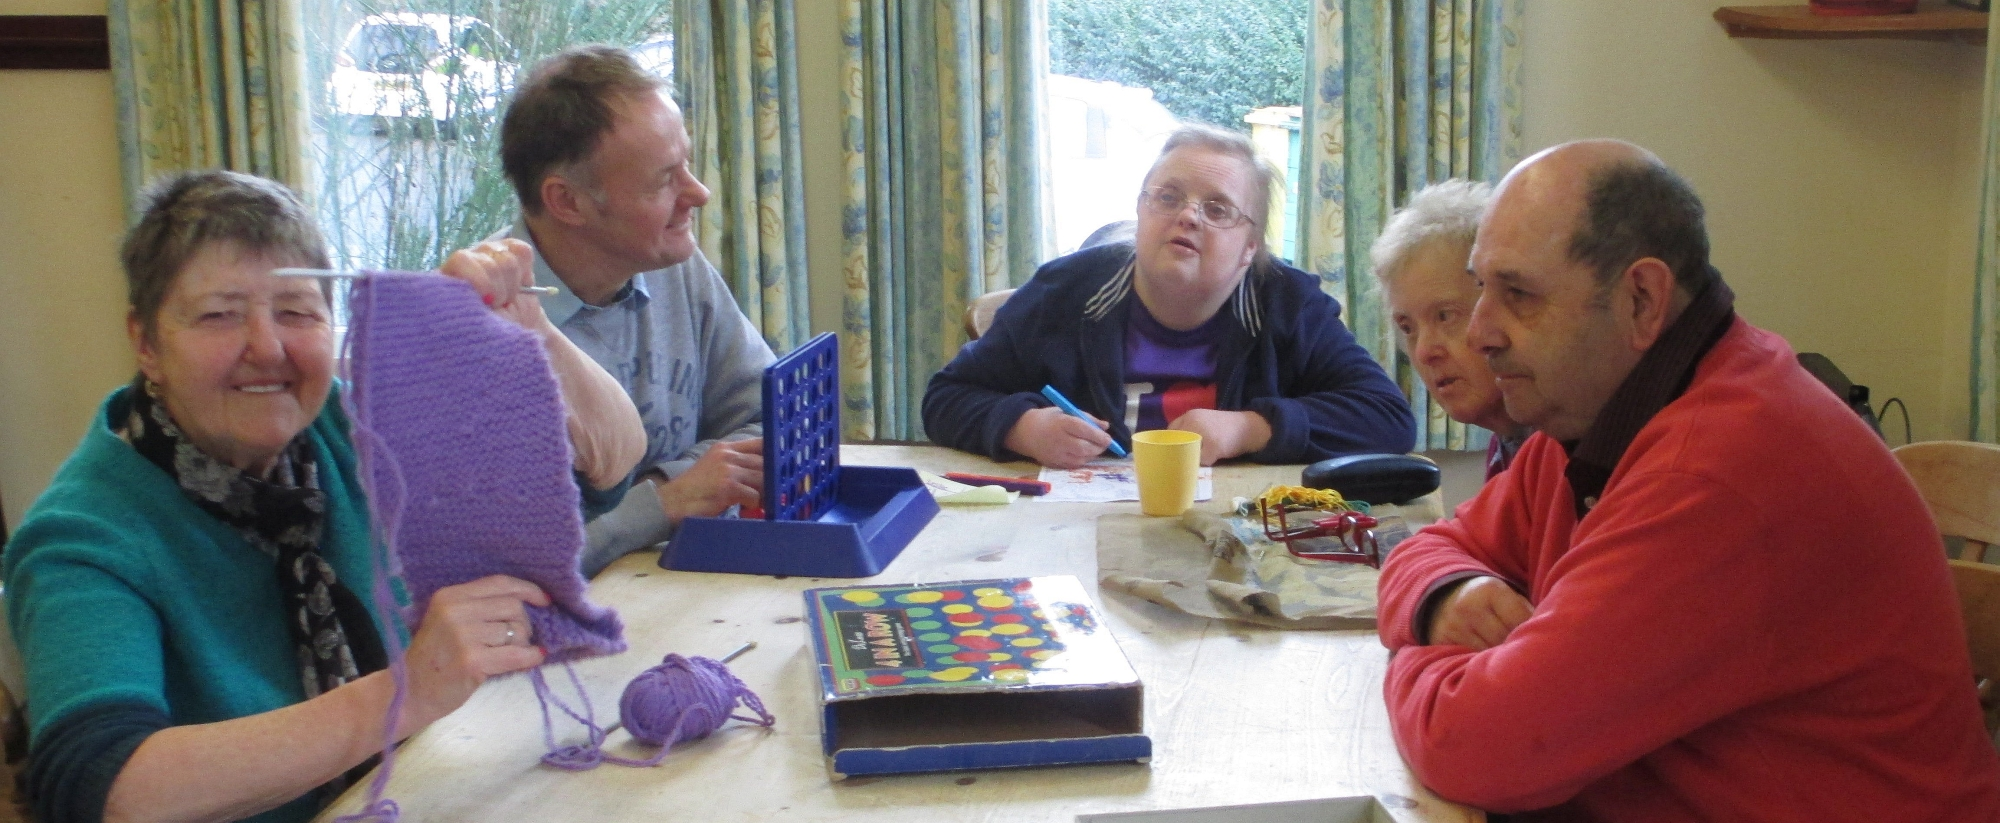 SD Mencap Pic Daycare Craft Activities and Social Games